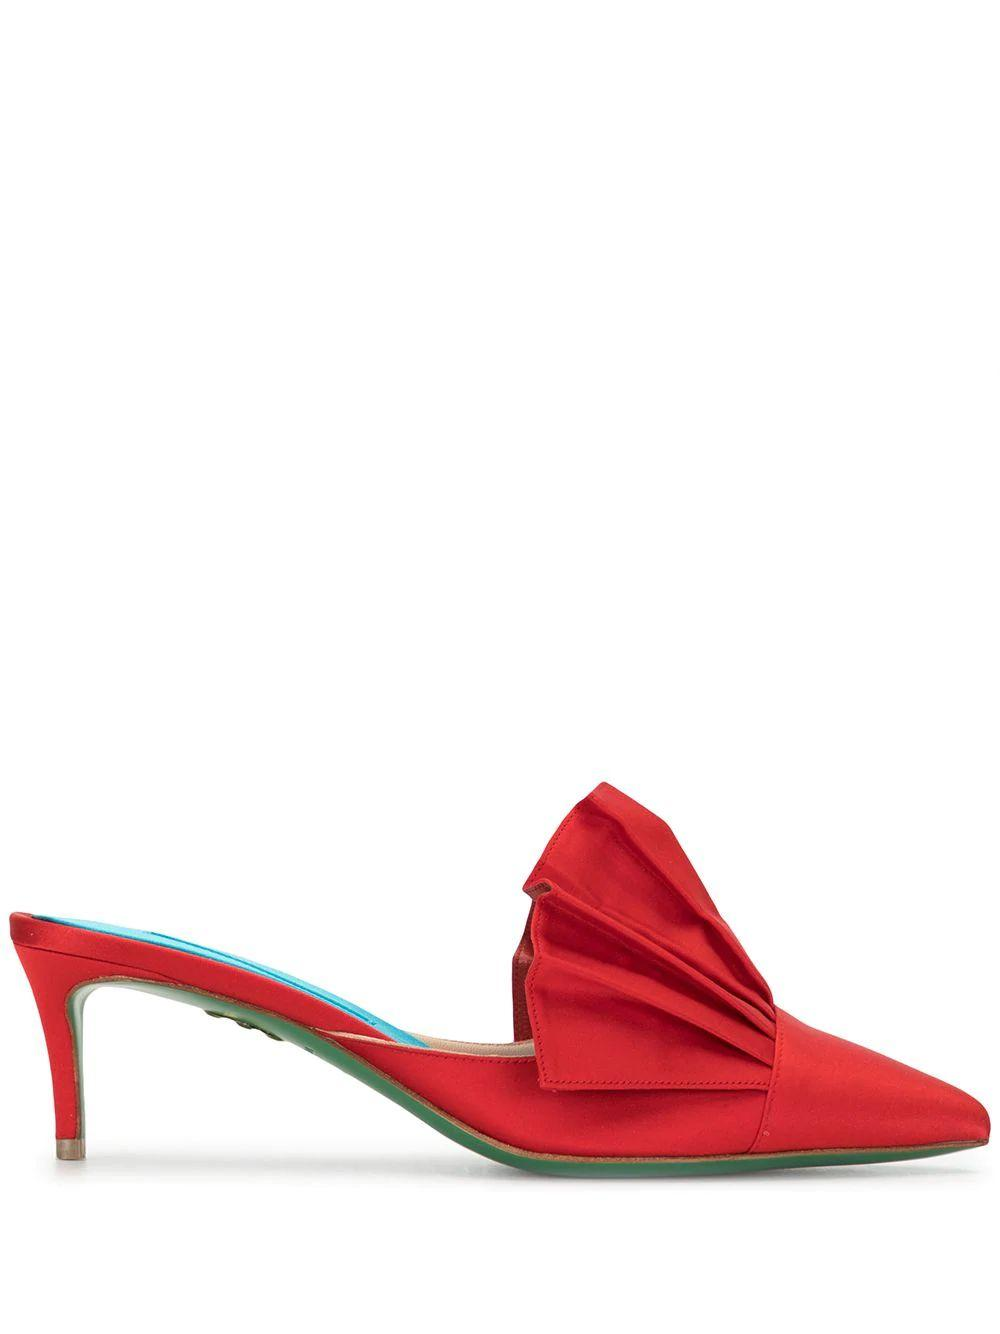 Fifth Avenue 55mm Pleated Mule Item # S-004-18